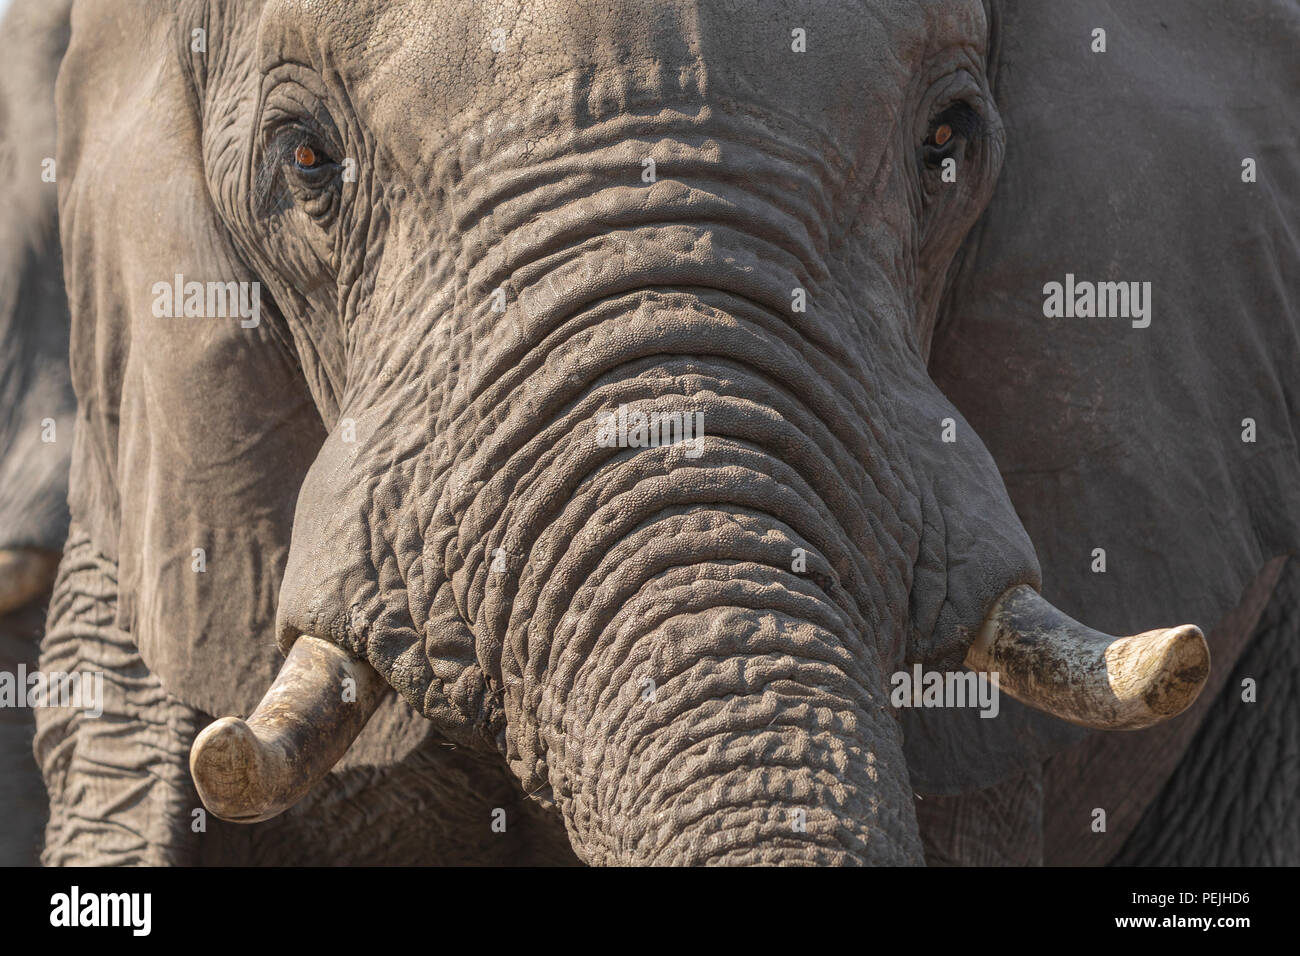 Close up of face of African elephant, Khwai Private Reserve elephant blind, Okavango Delta, Botswana - Stock Image